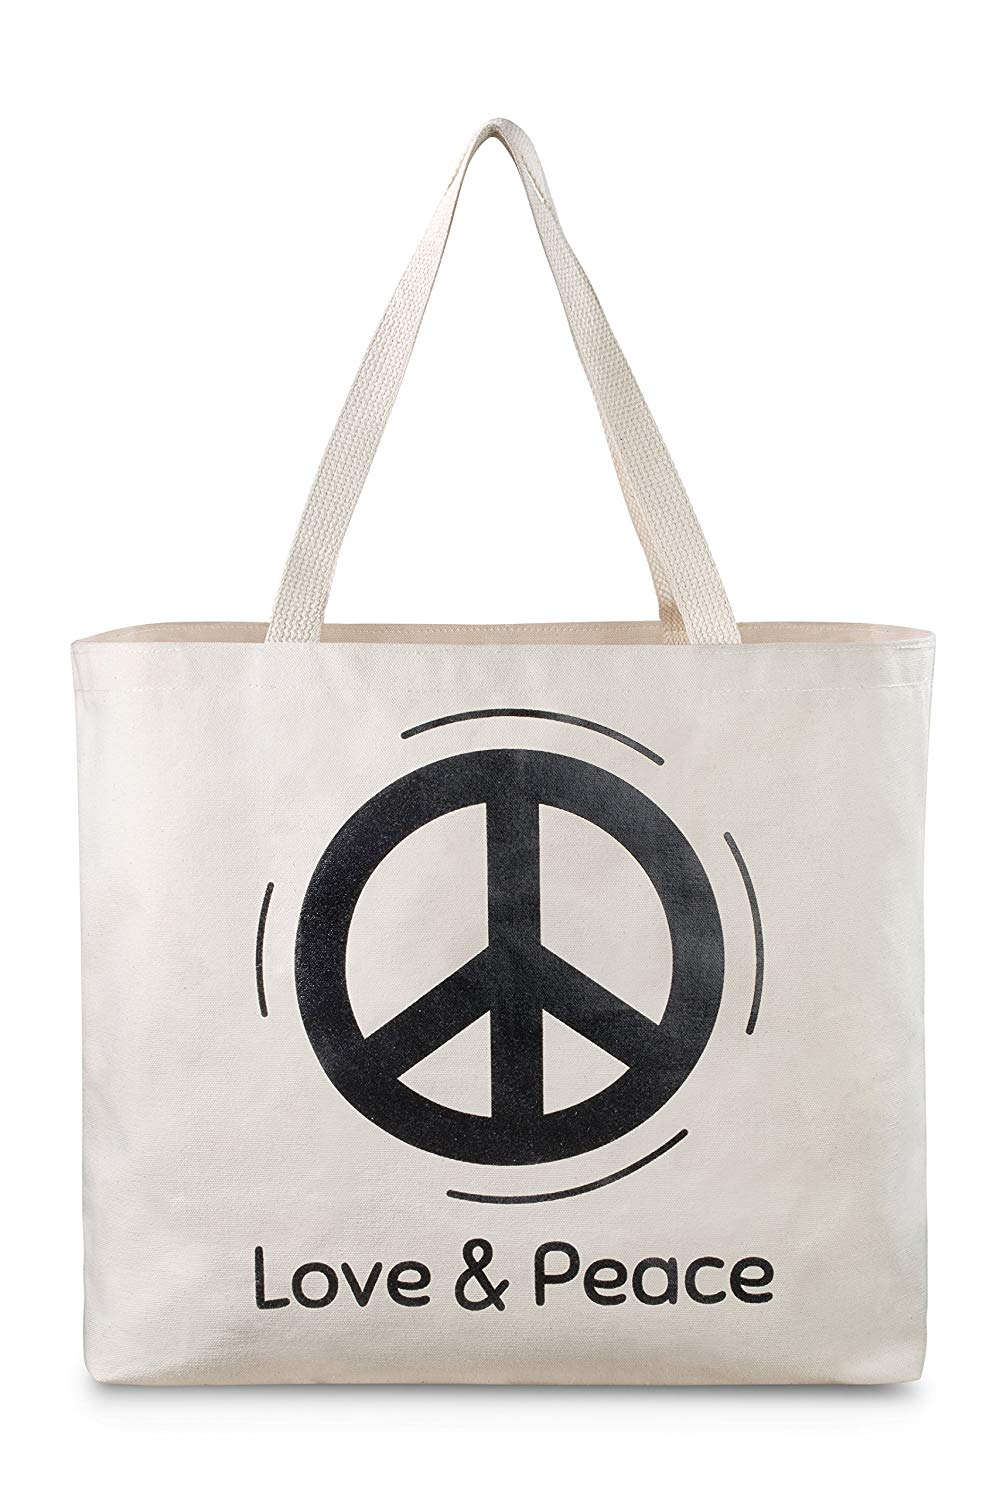 Reusable Canvas Bag - Tote Bag with Printed Love and Peace Theme. Double Stitched with Sturdy Shoulder Straps. Great Bag for Grocery Shopping. Made in USA (Love and Peace)